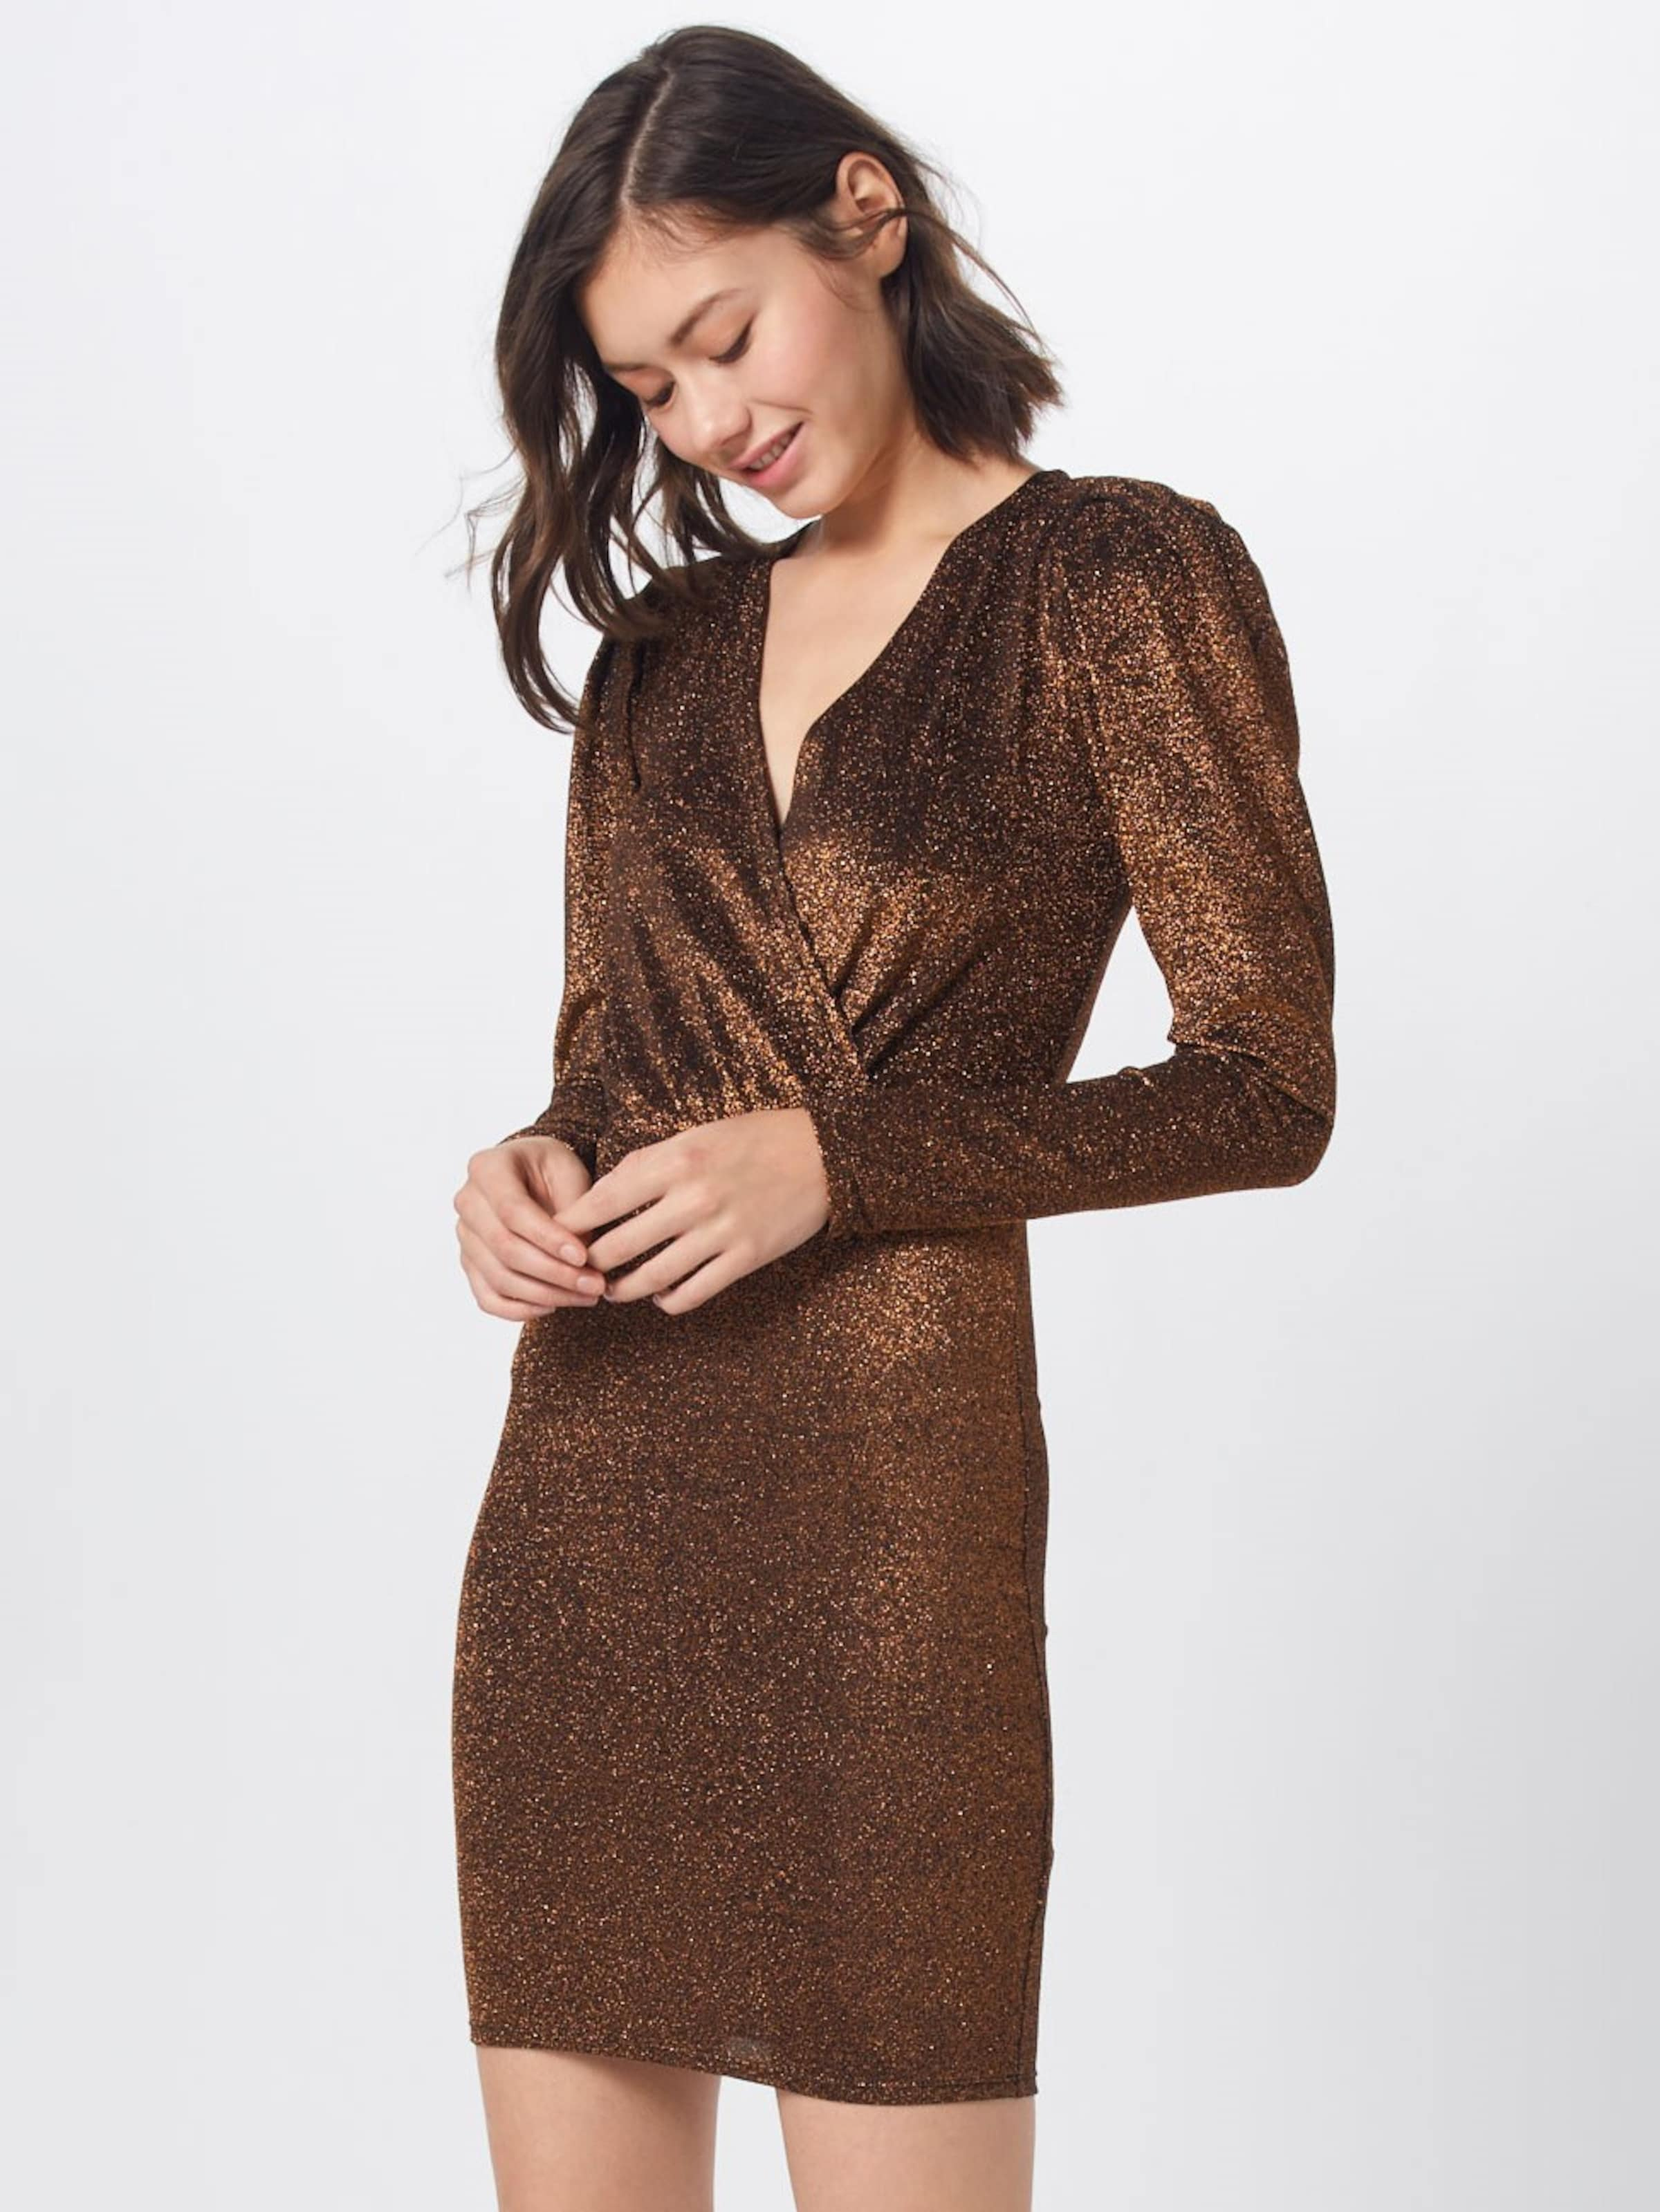 Cocktailkleid Cocktailkleid In Moves Bronze 'atalja' Bronze In Moves 'atalja' sQrtdh